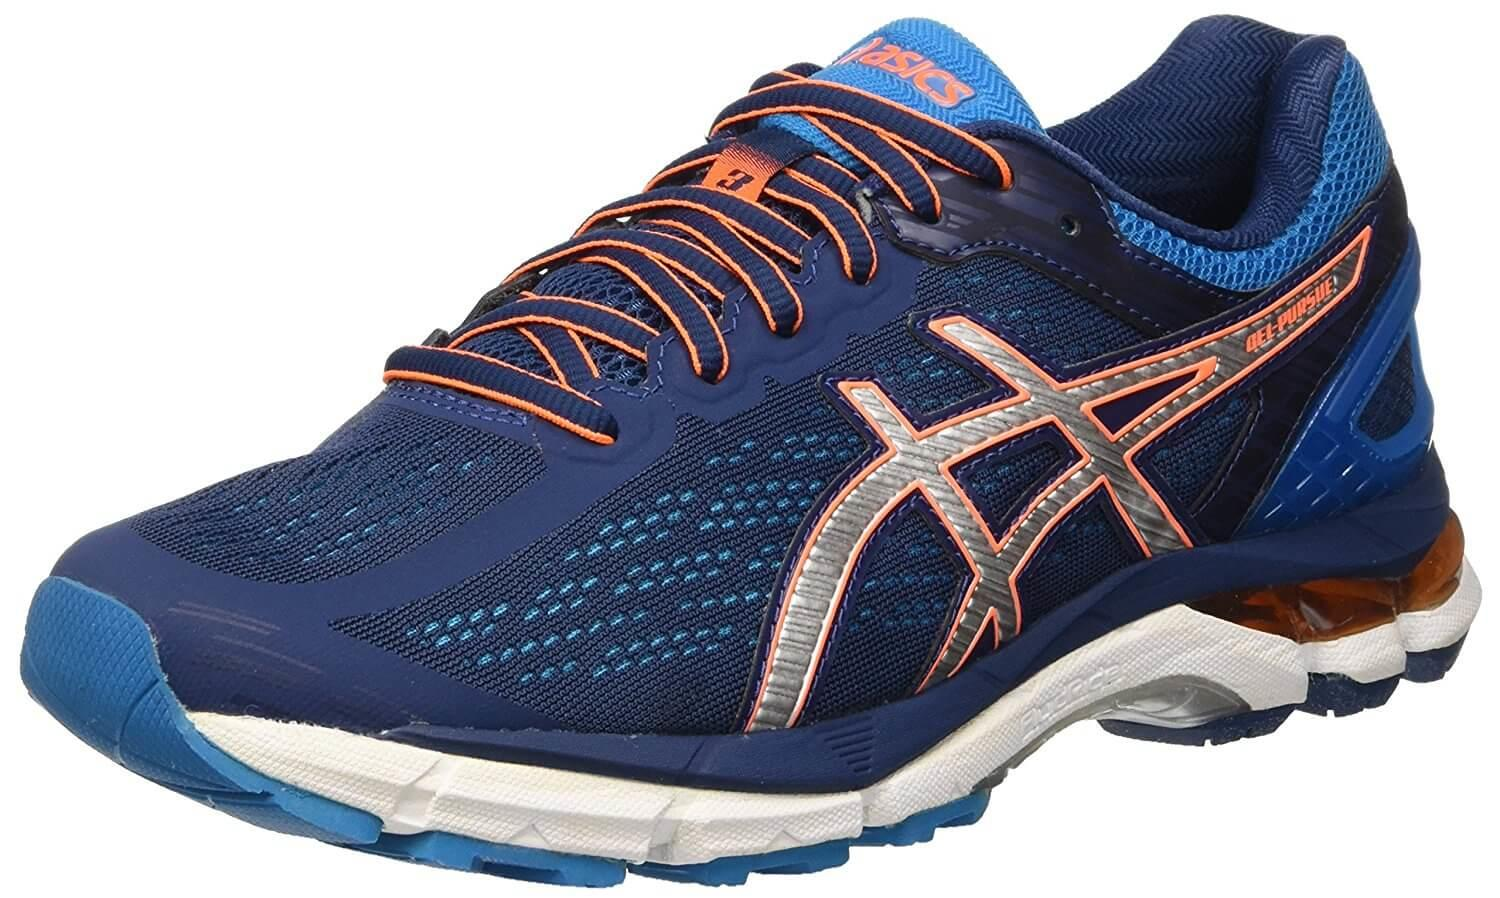 Take a look at the Asics Gel Pursue 3